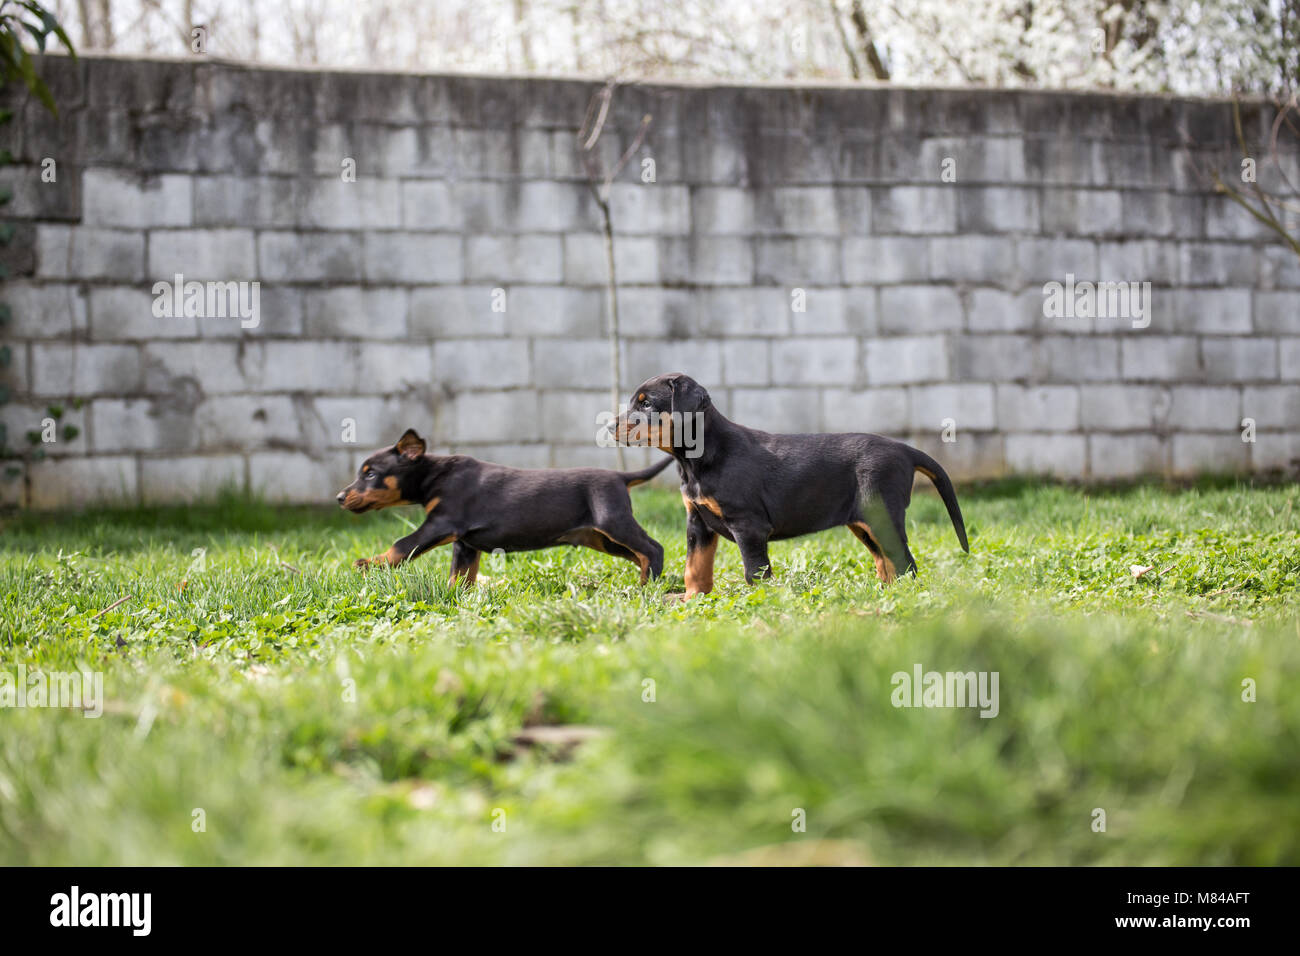 Dobermann puppy - Stock Image